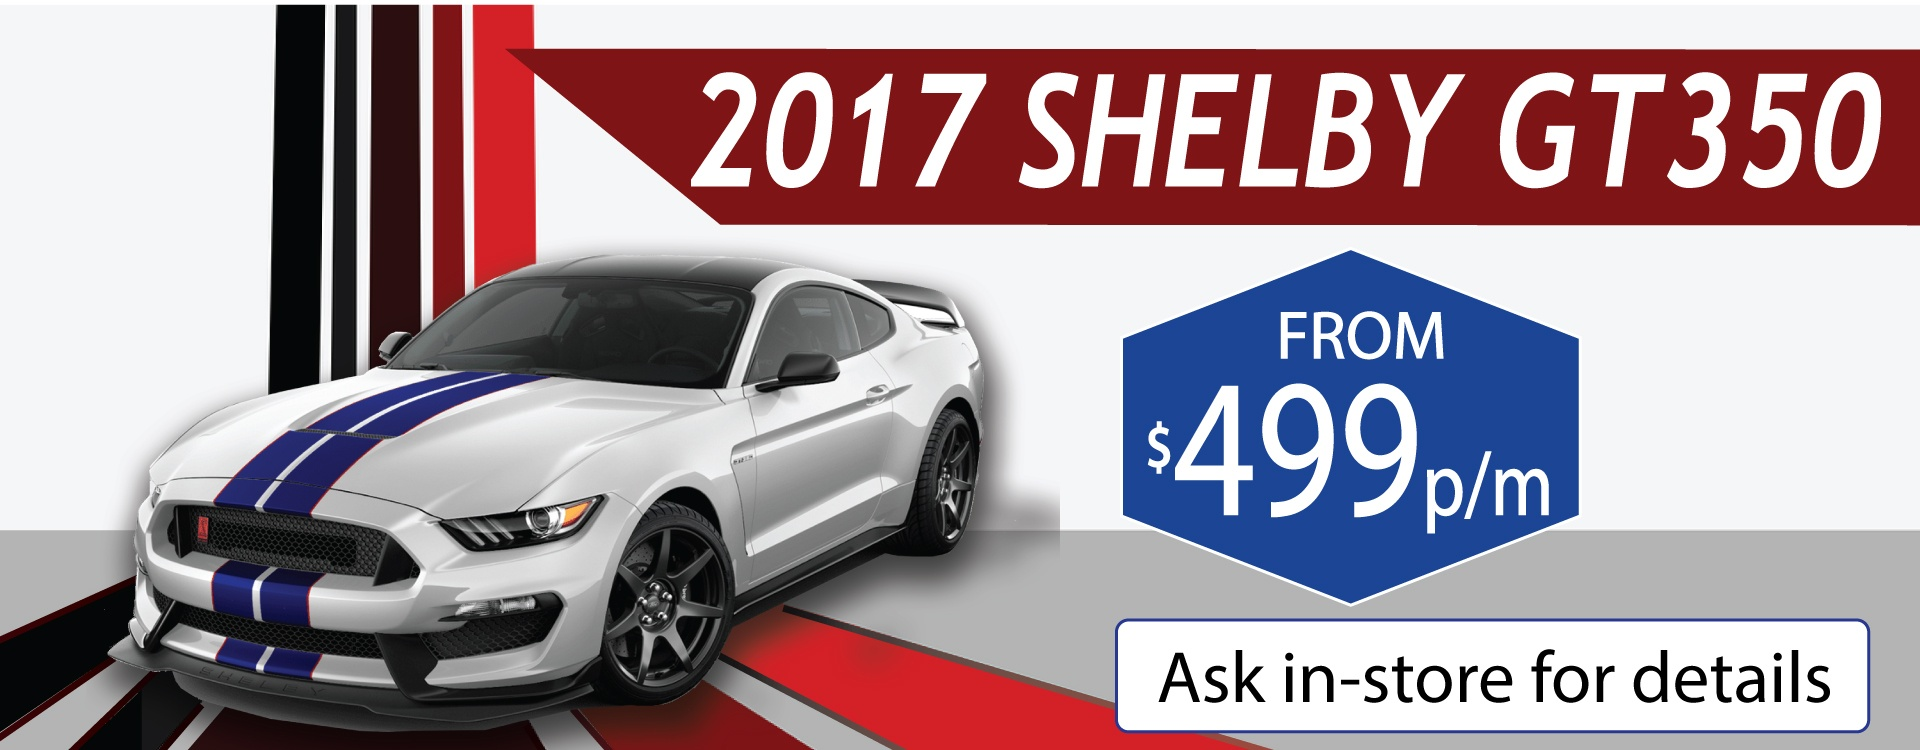 2017 Shelby Clearout